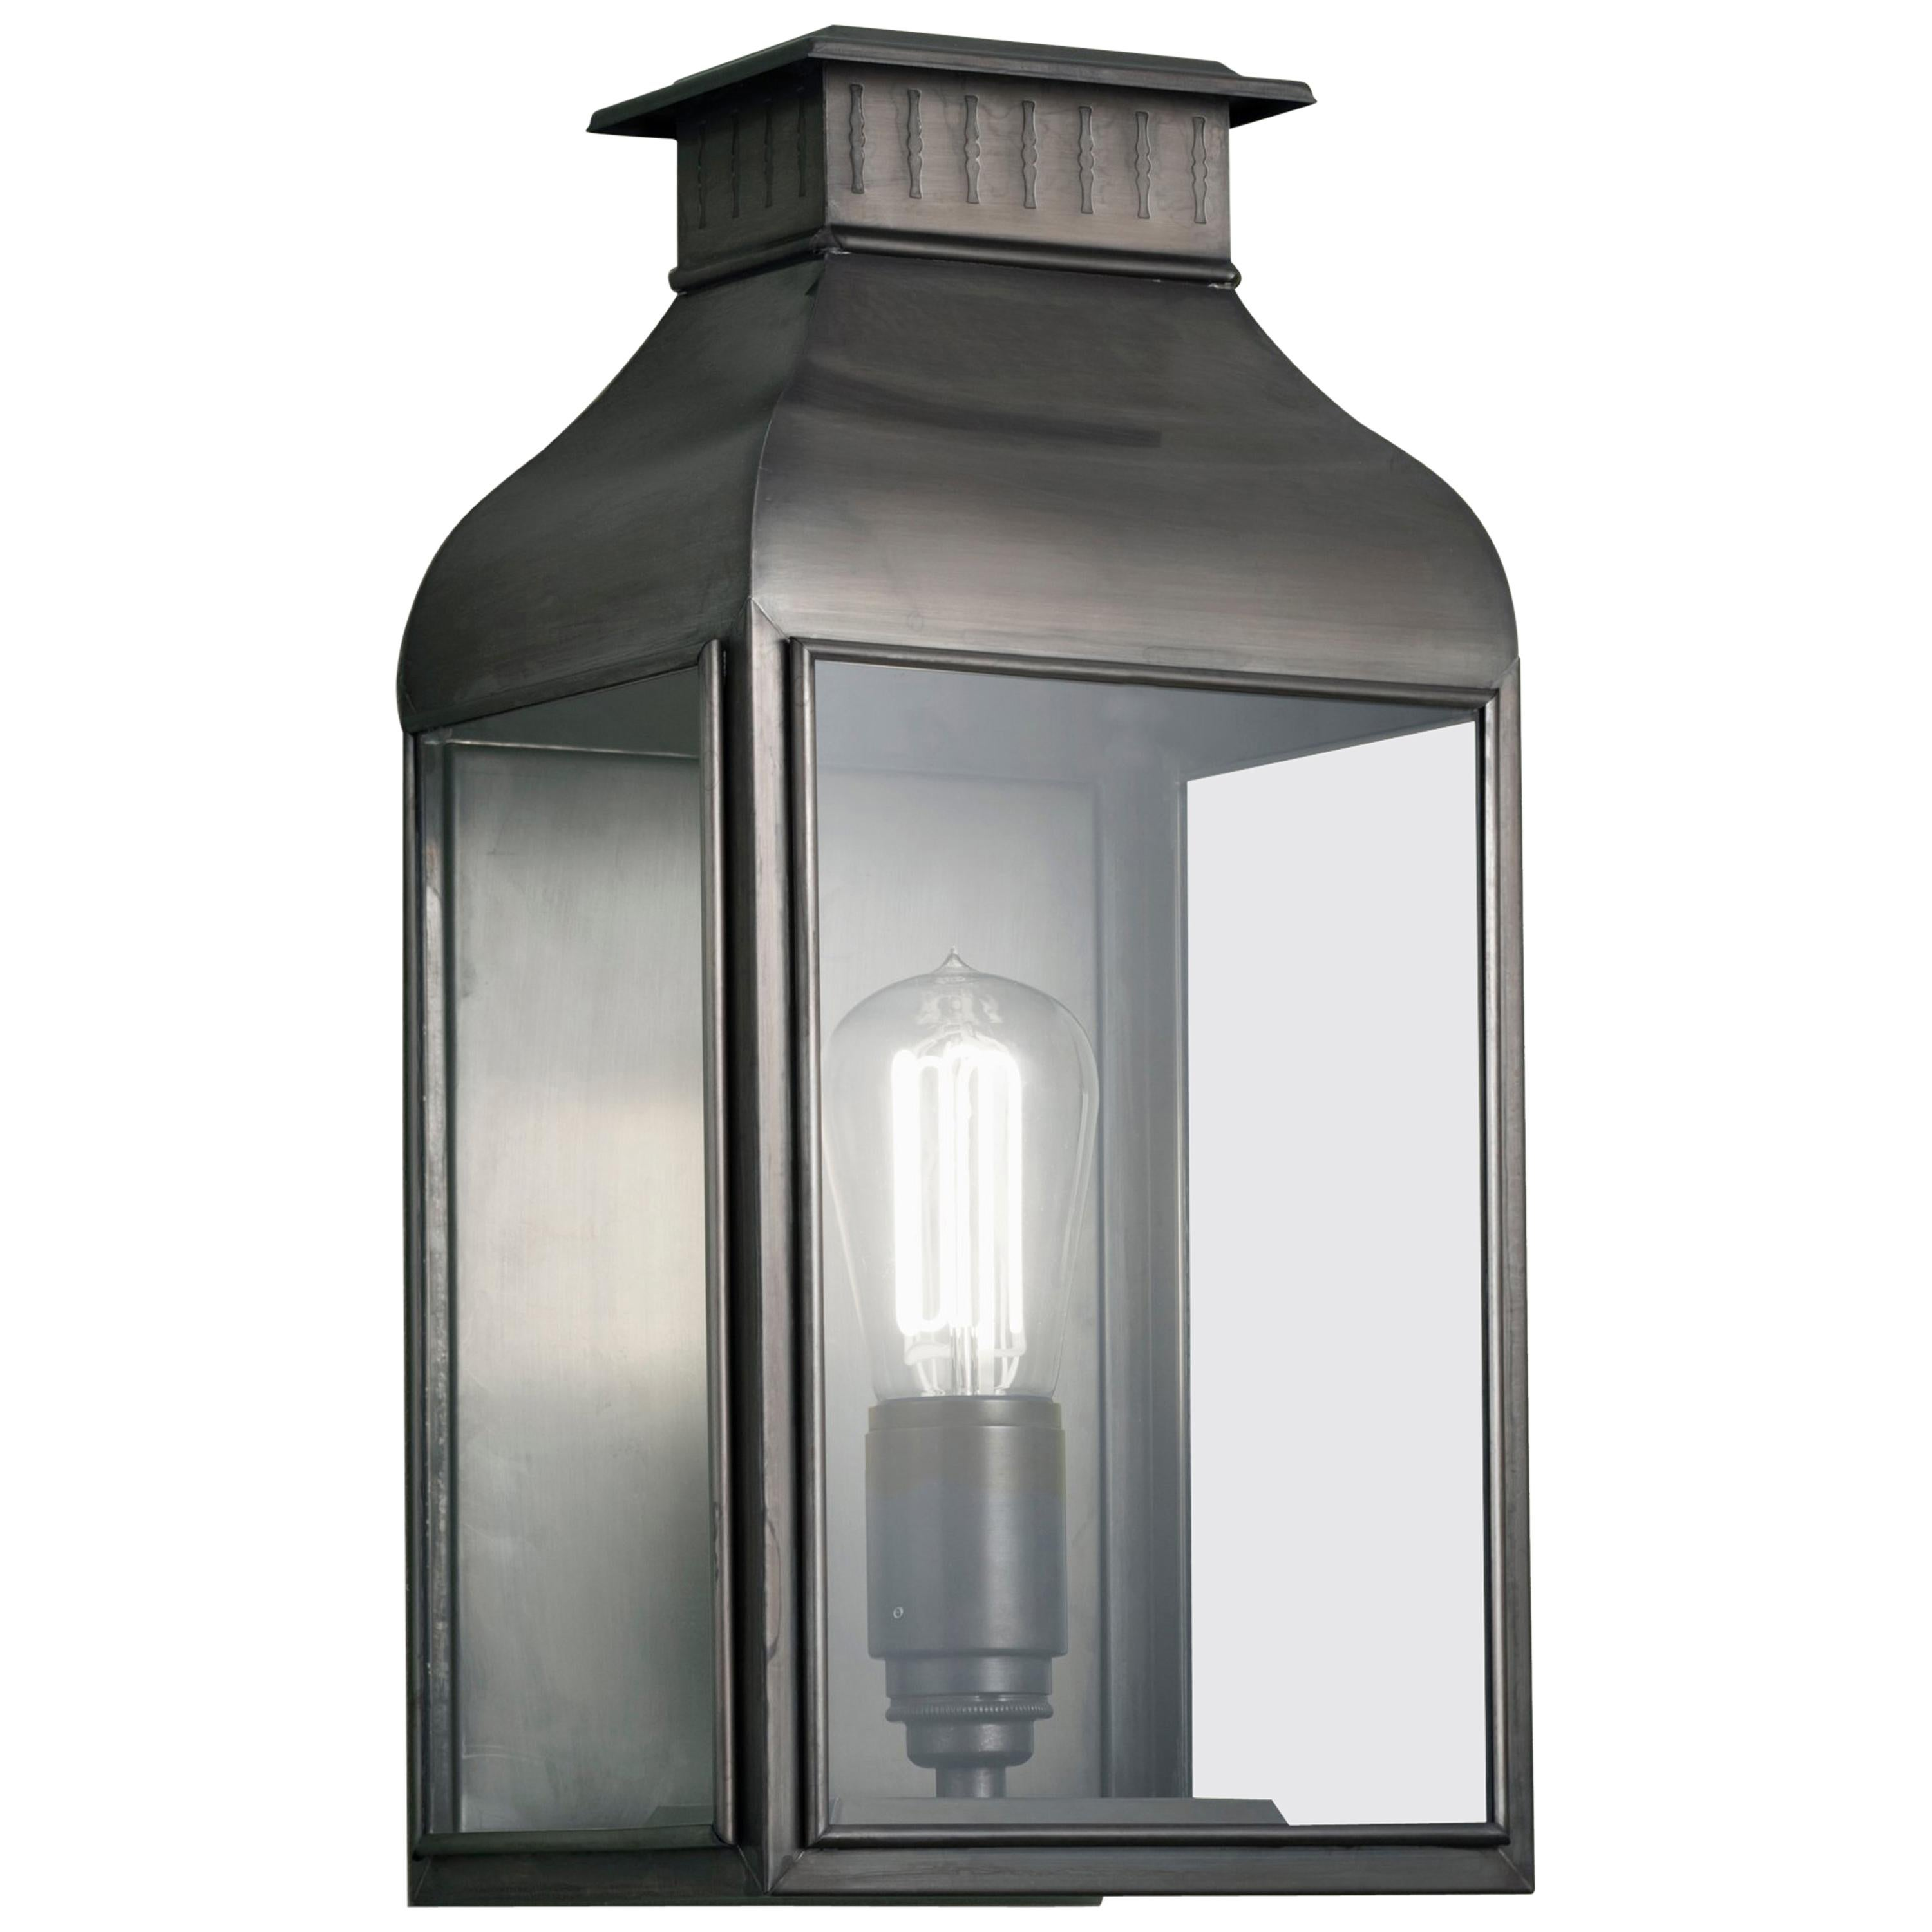 Tekna Pagode-C Wall Light with Dark Bronze Finish and Clear Glass